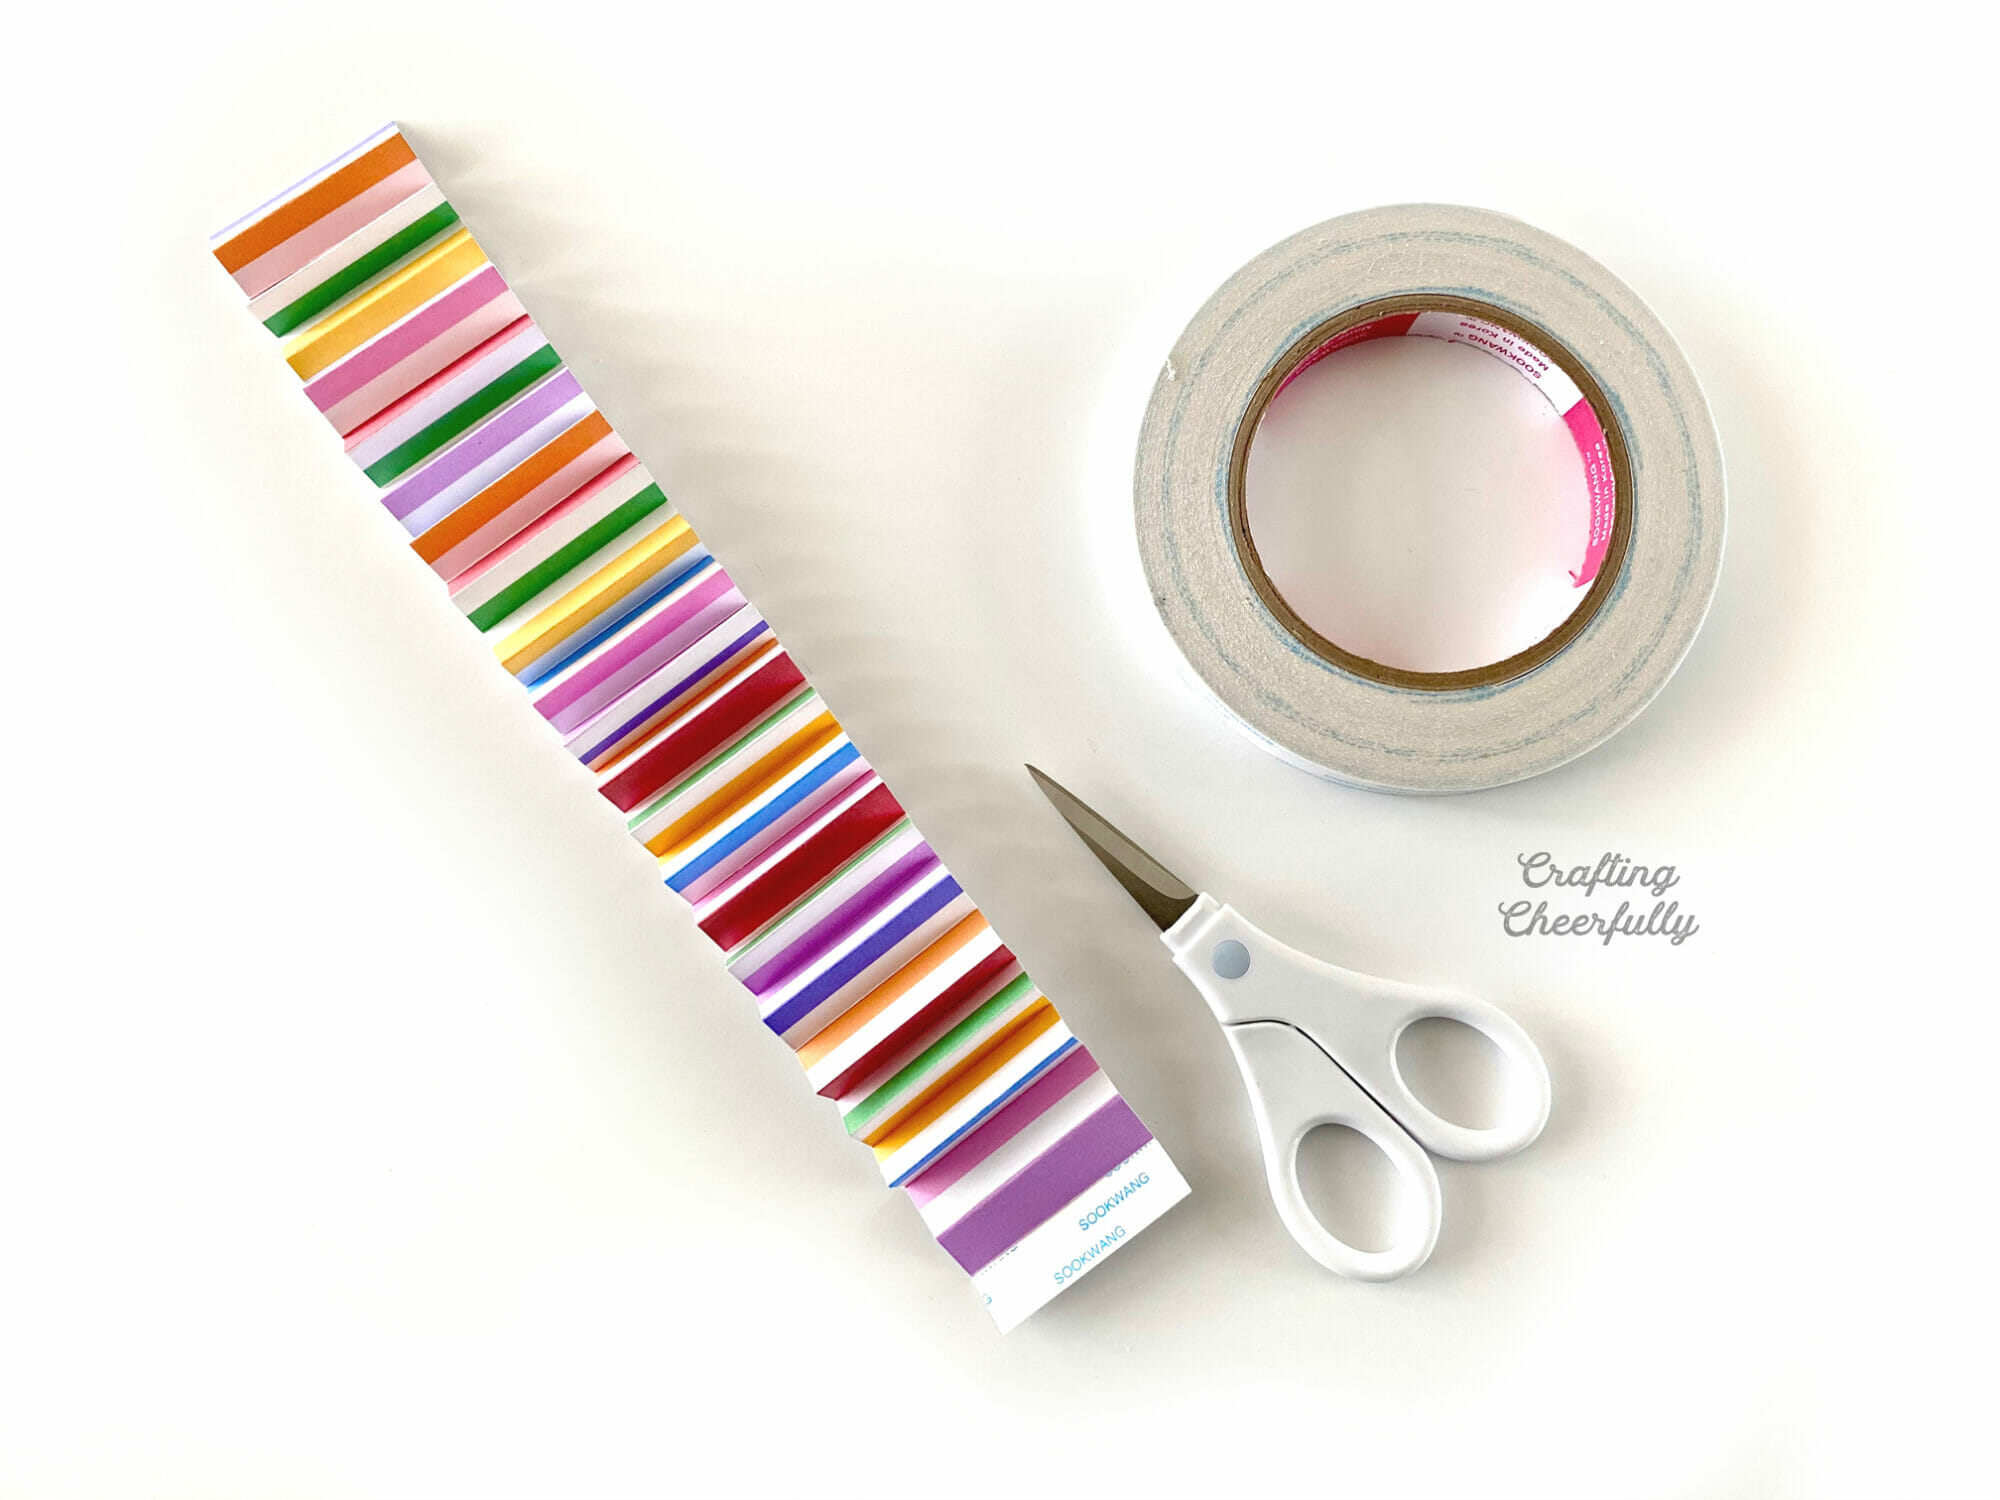 Strip of colorfully striped paper accordion folded with a smalls scissors and a roll of double-sided tape laying next to it.